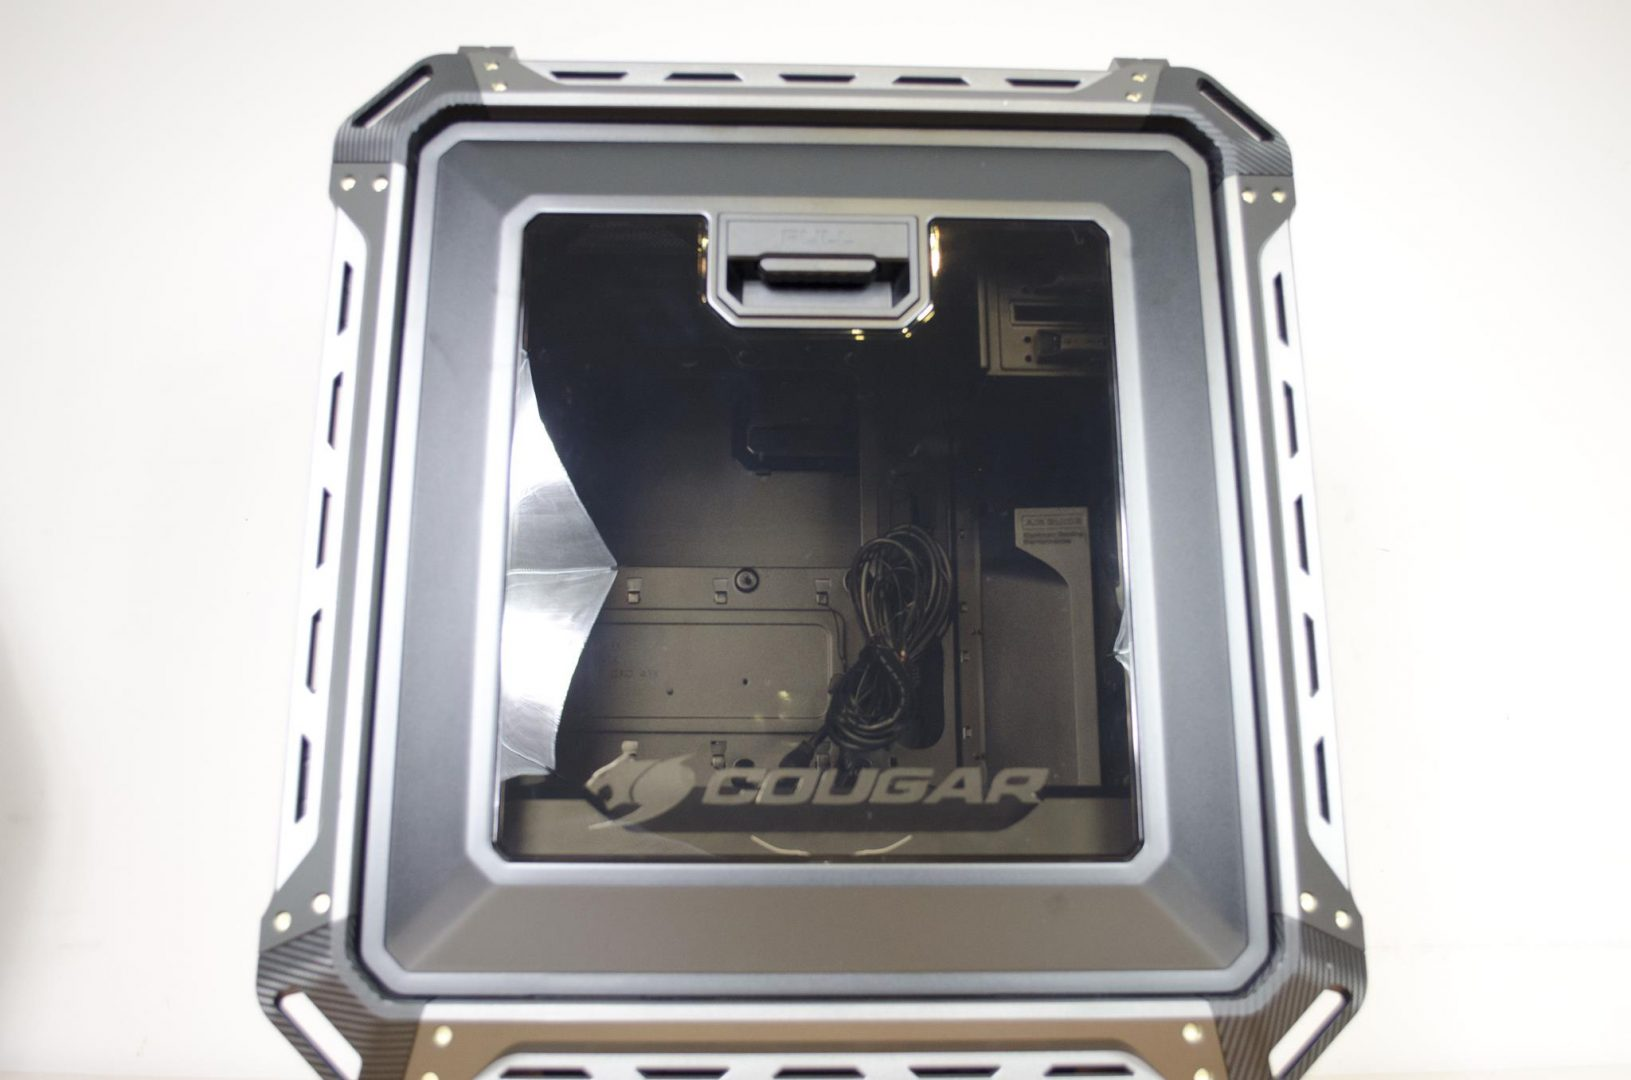 cougar-panzer-max-case-review-_3